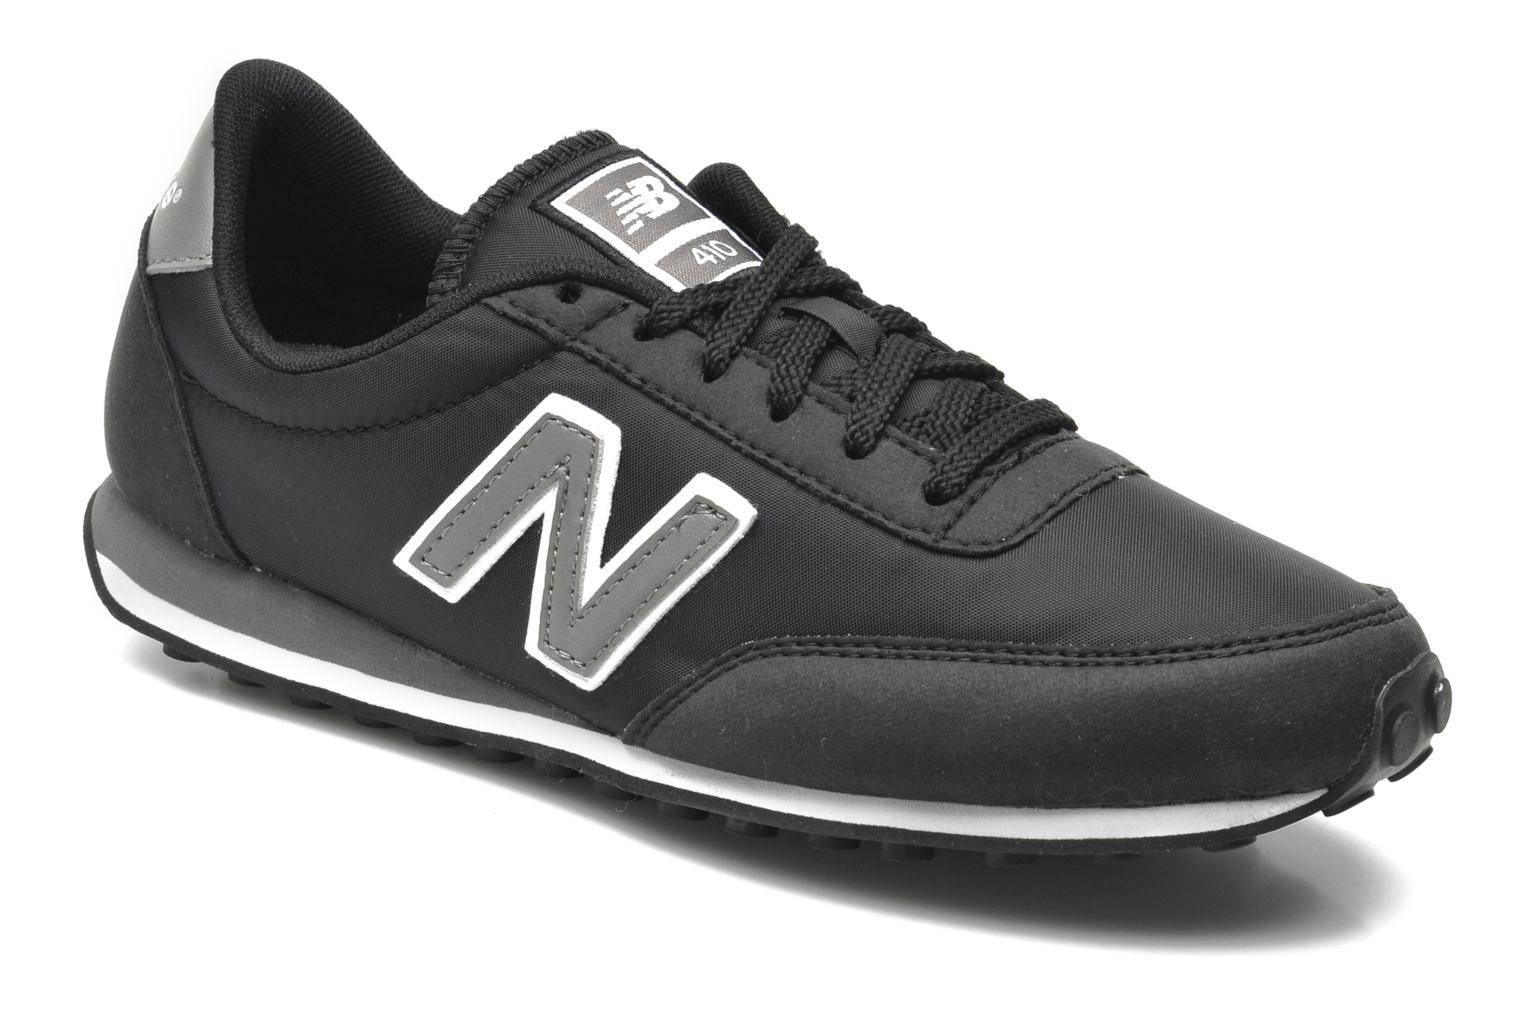 new balance zwart dames u410